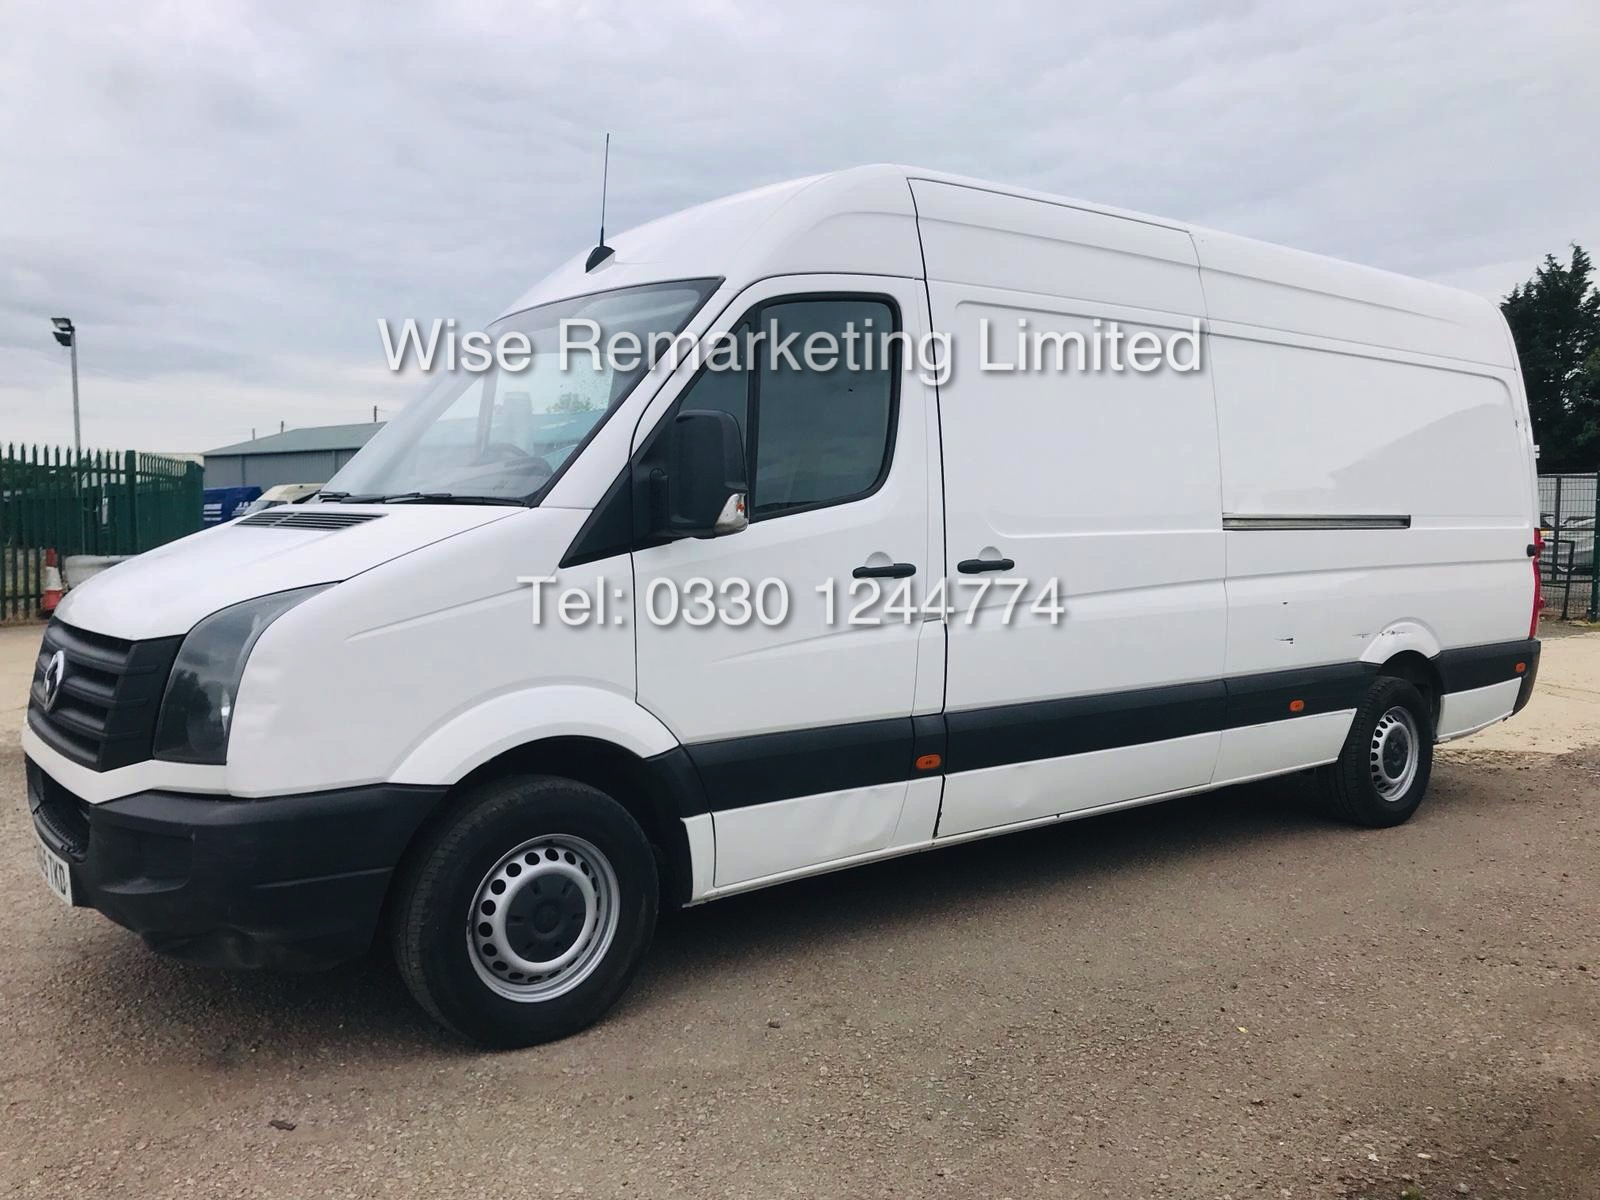 VOLKSWAGEN CRAFTER CR35 2.0 TDI LONG WHEEL BASE 2016 MODEL - Image 5 of 14